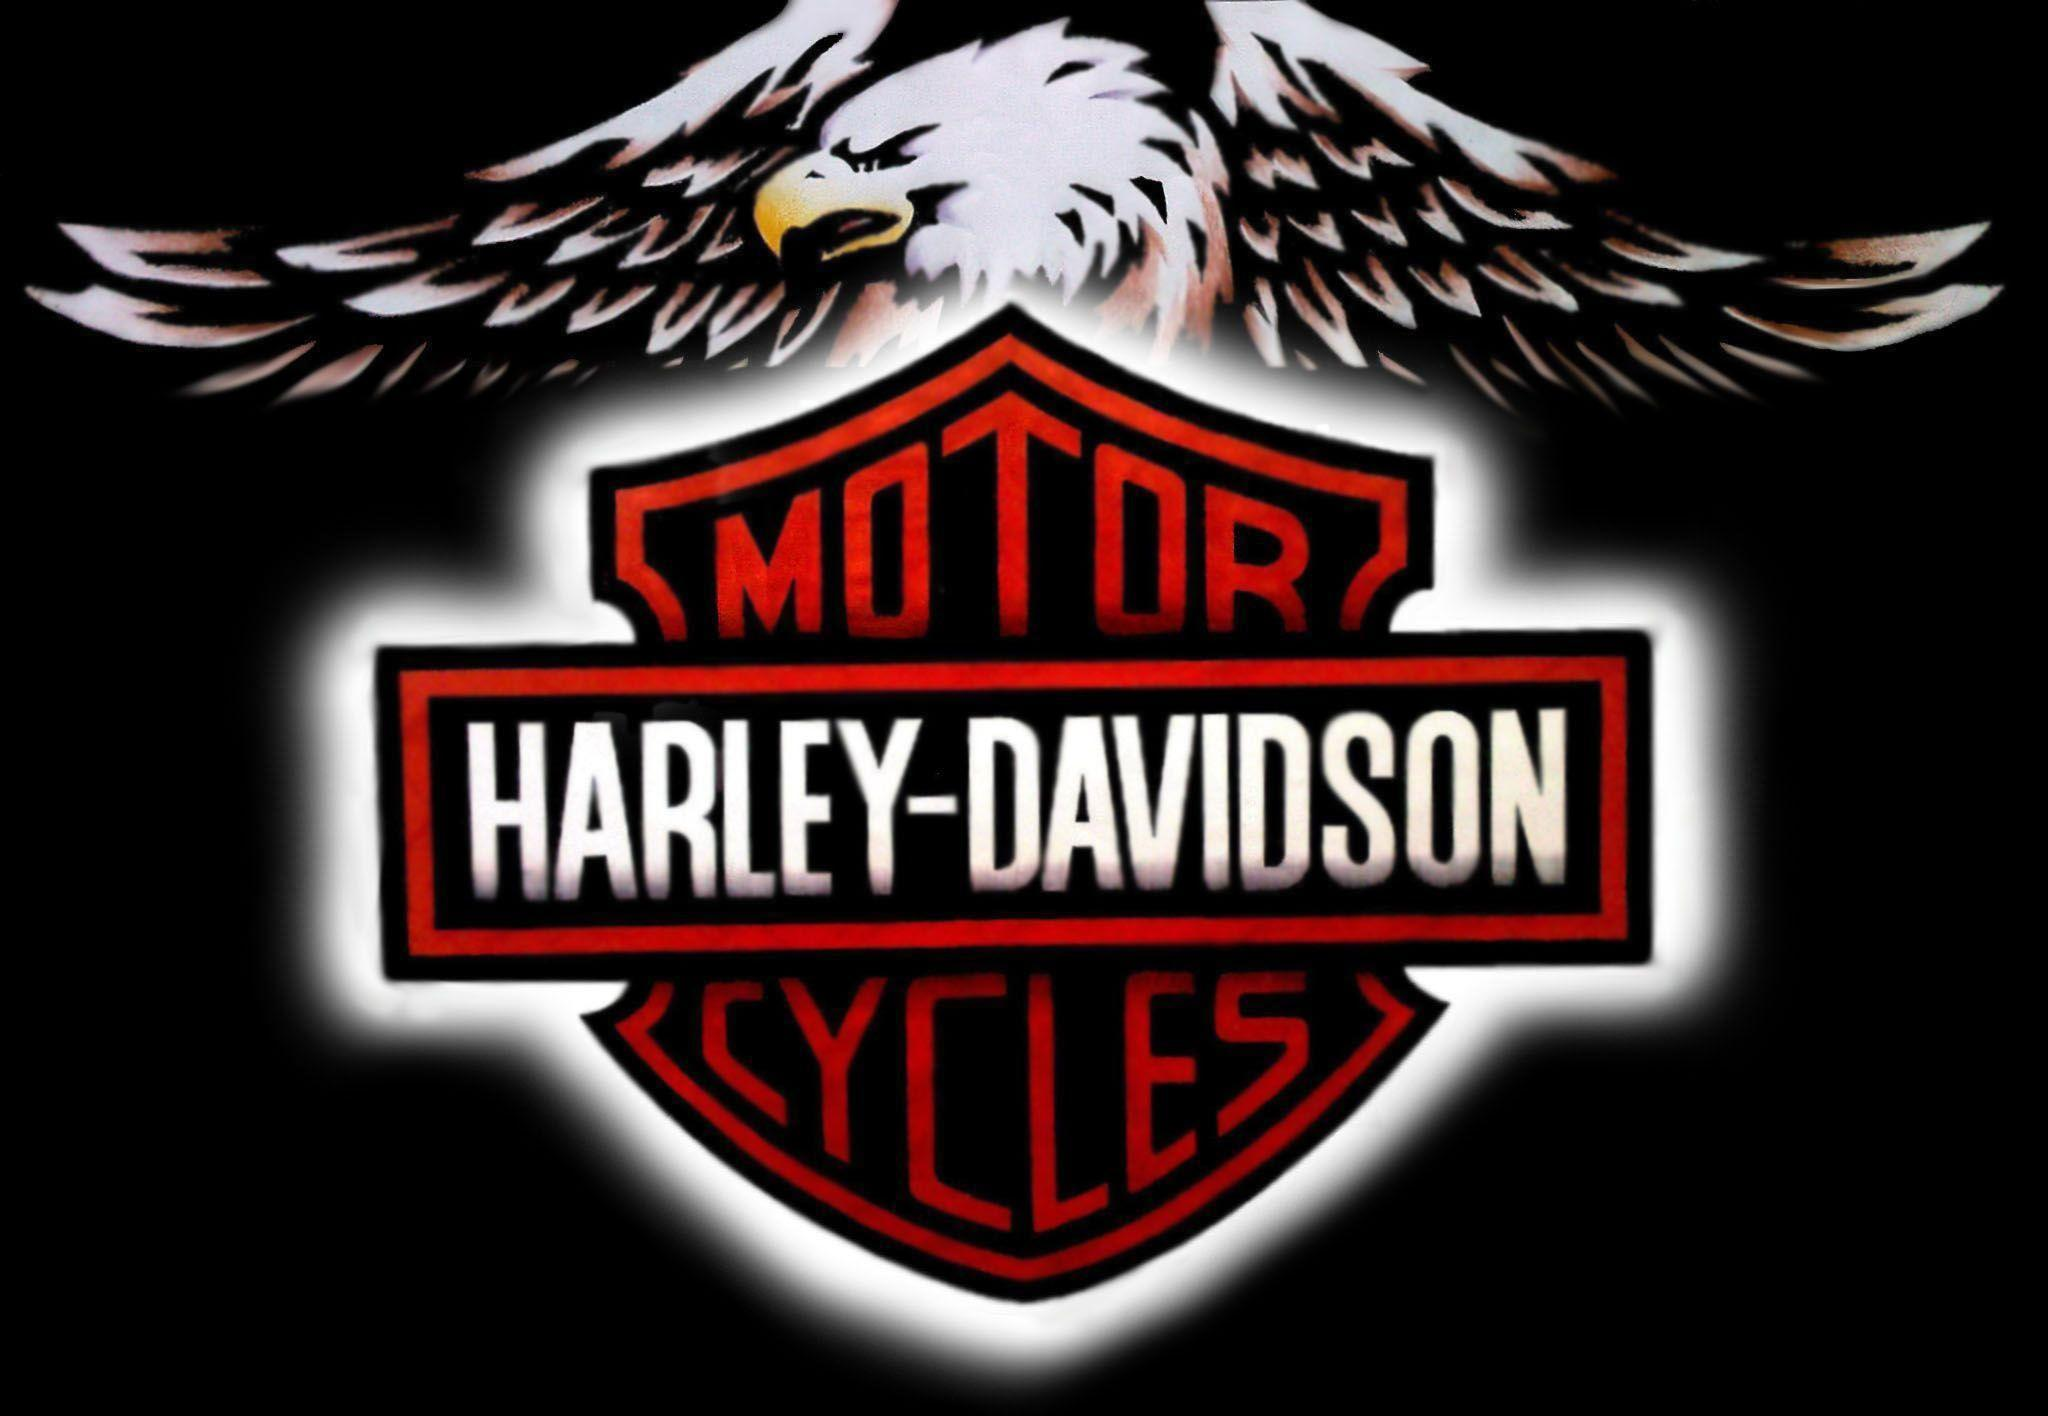 17 best images about harley davidson on pinterest eagle